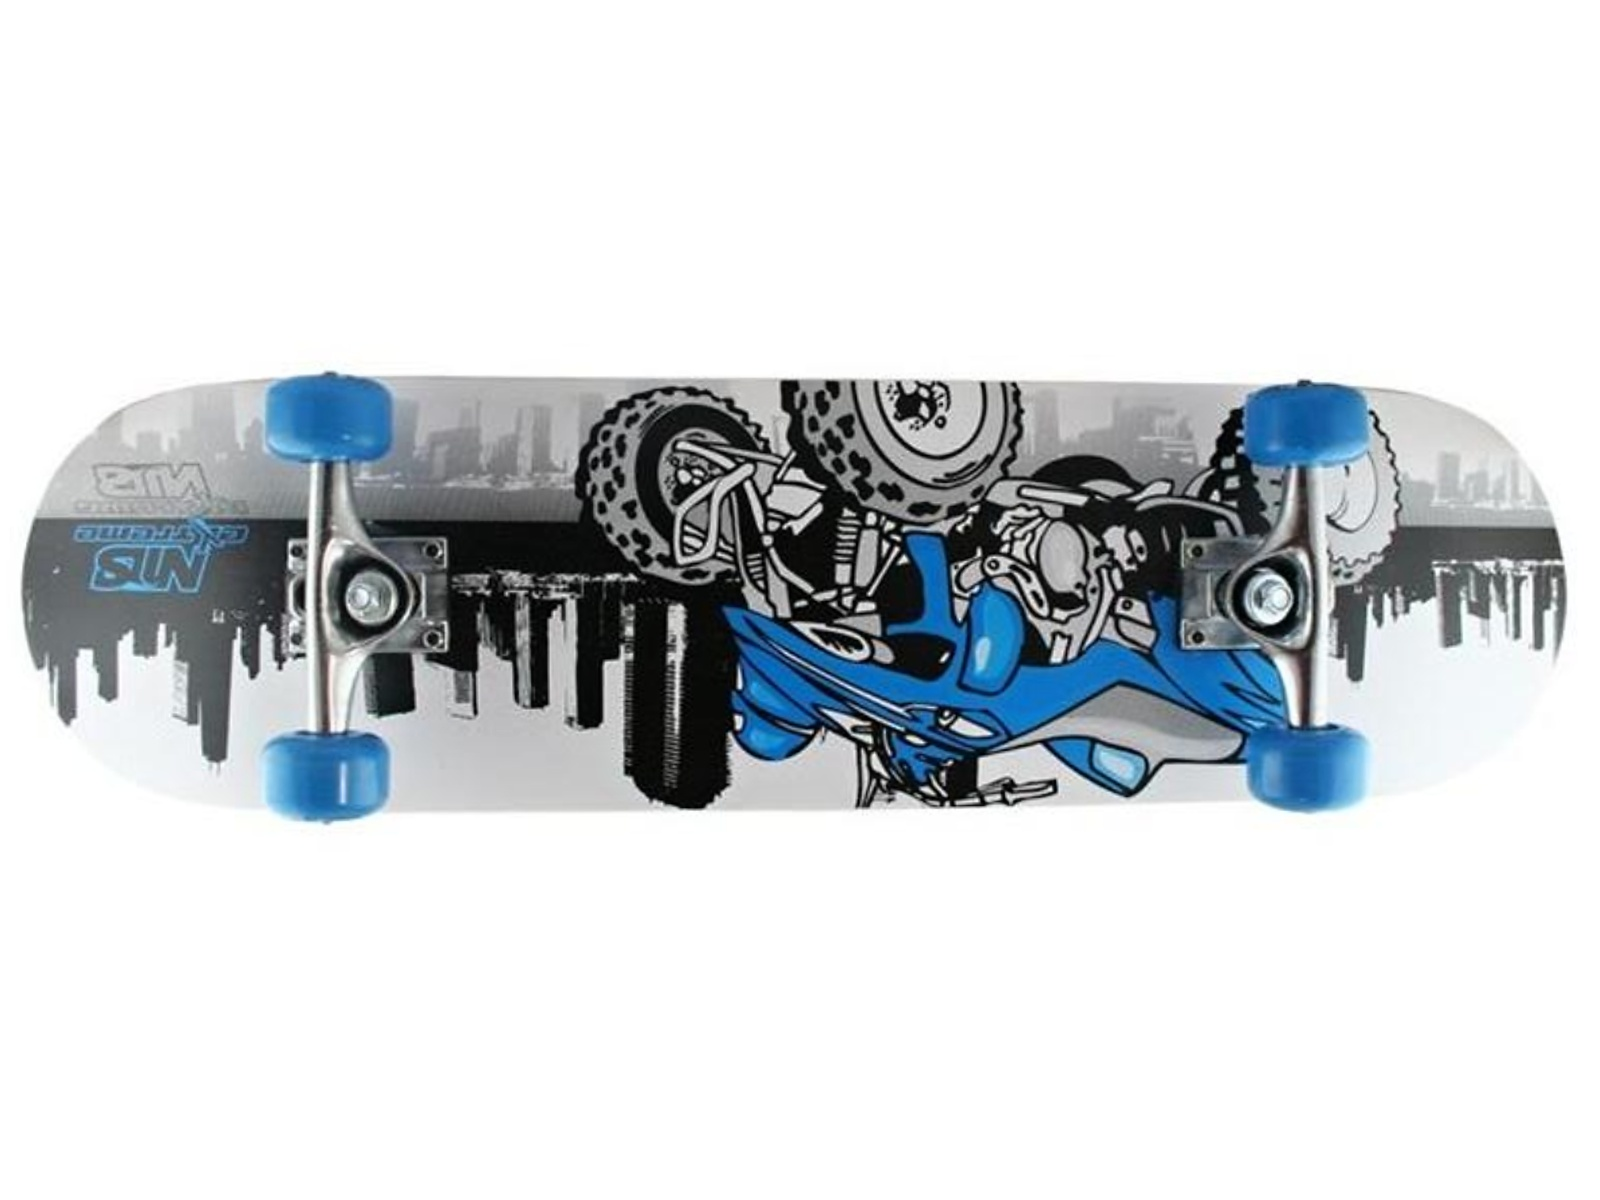 Skateboard NILS Extreme CR 3108 SB (F8) Speed